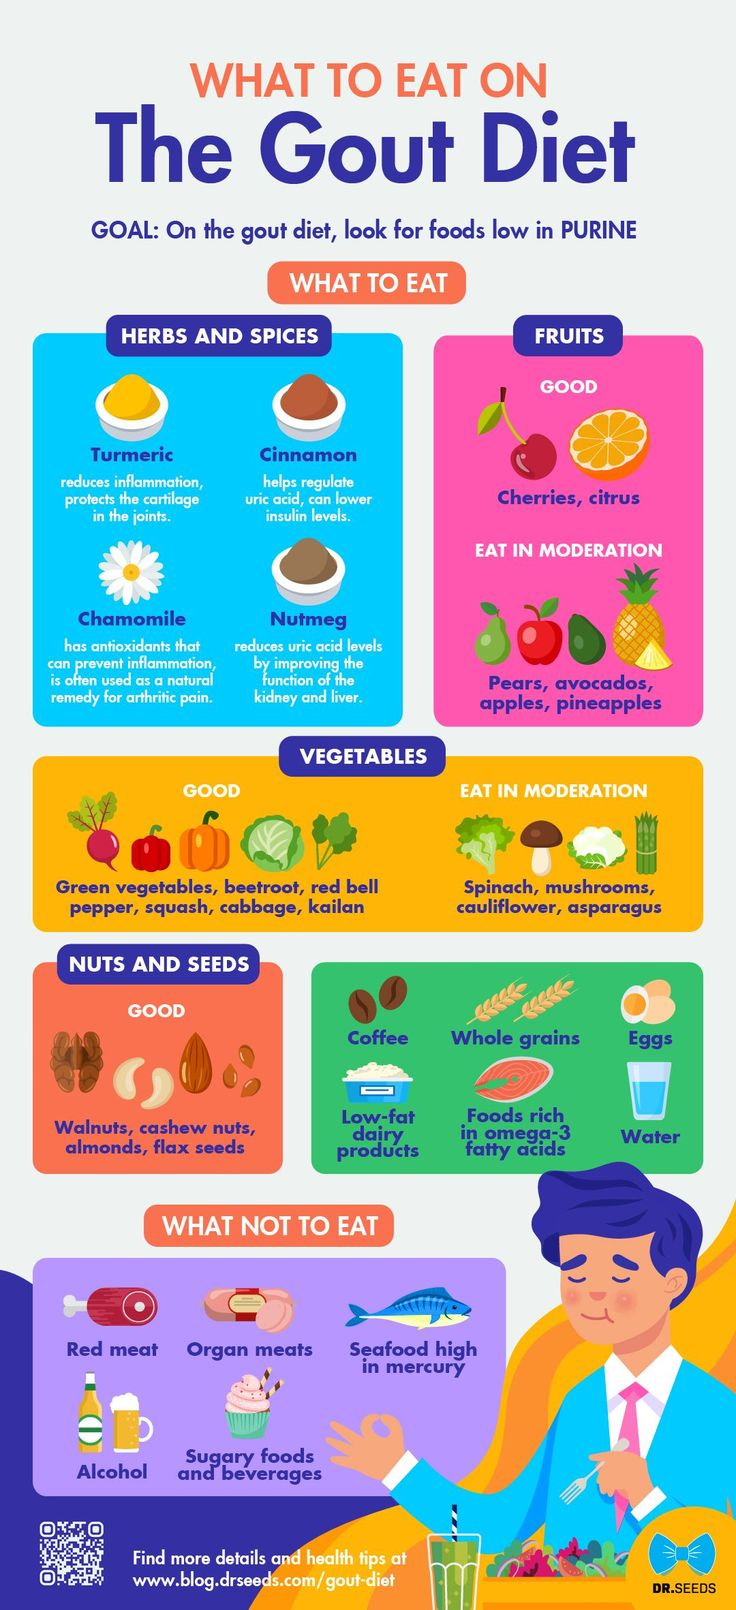 Gout Diet: What to Eat and What Not to Eat [INFOGRAPHIC]